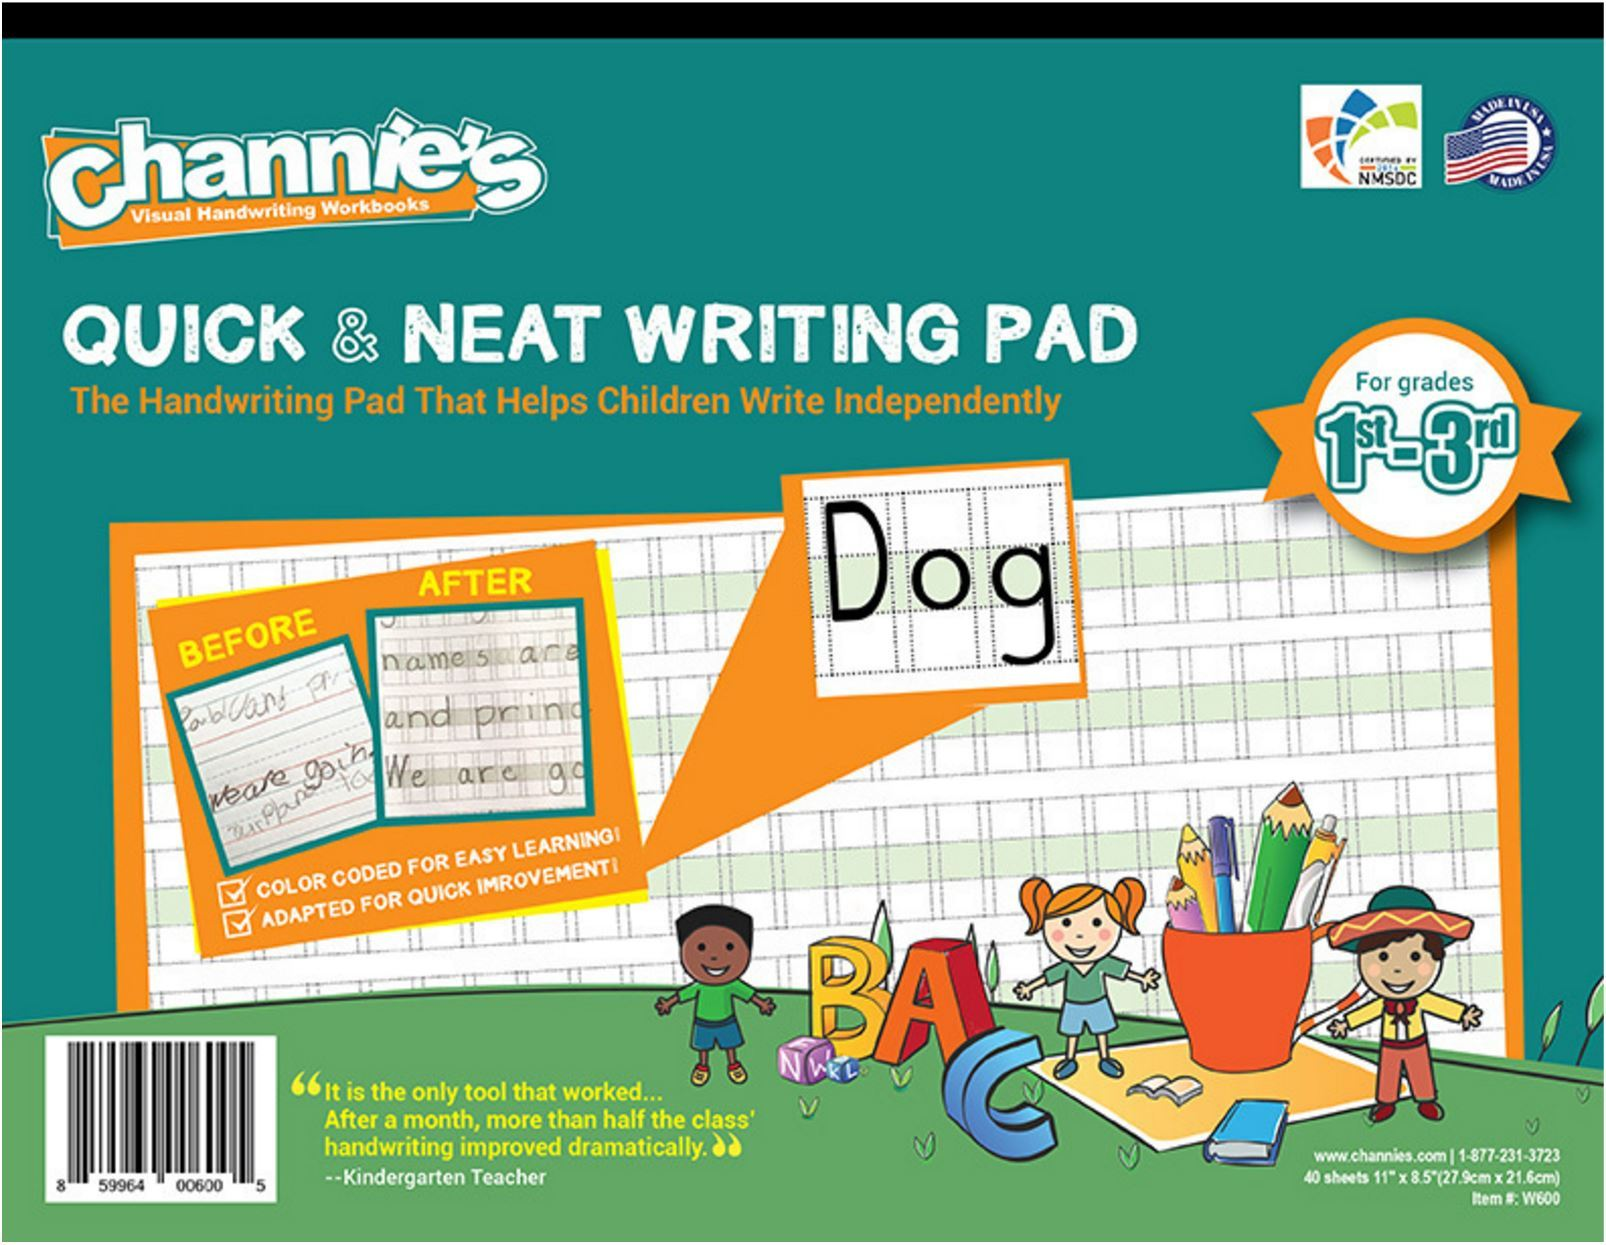 Channie S Visual Handwriting Pad For Grades 1st